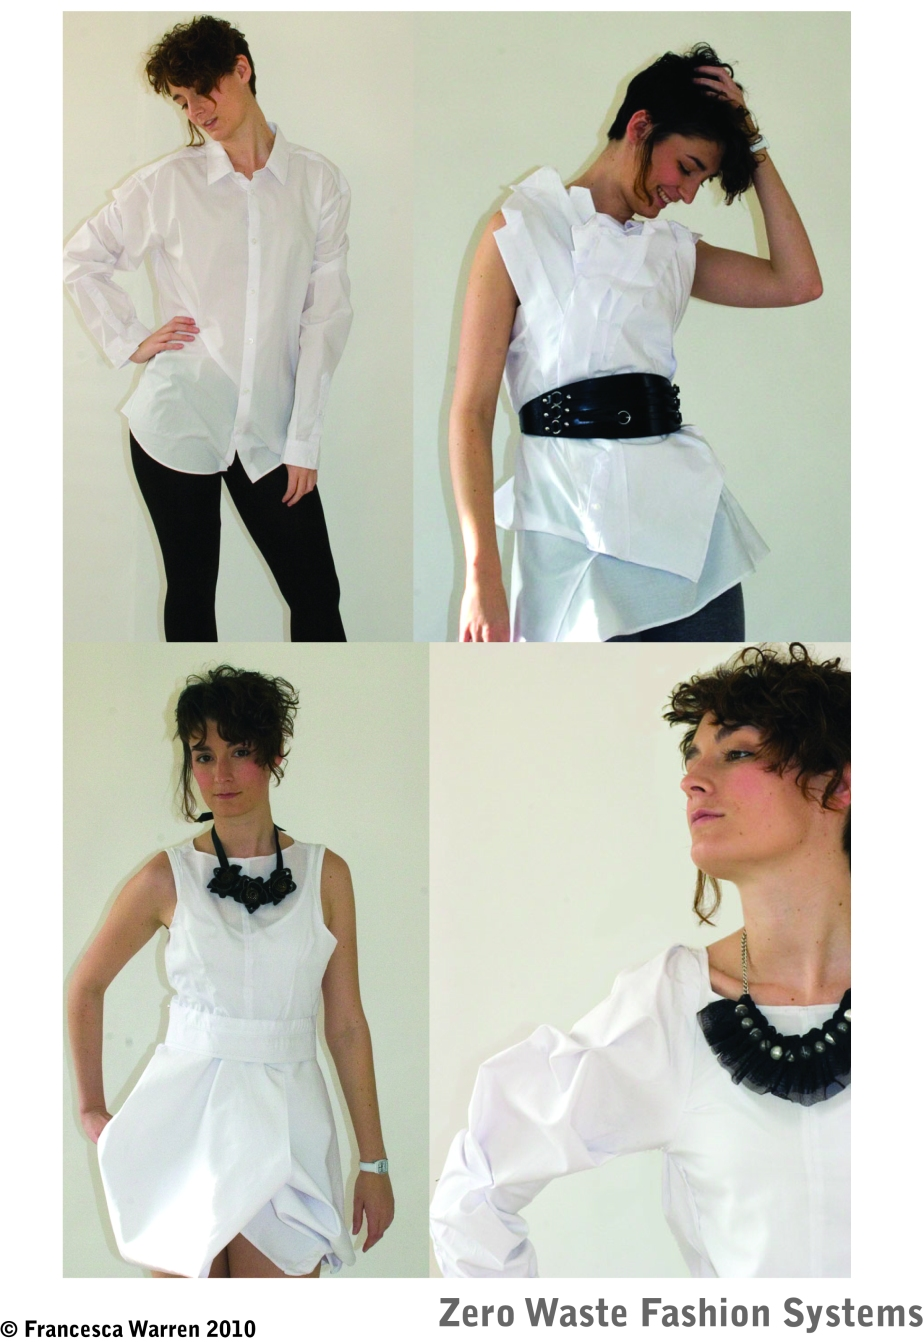 Zero Waste Fashion Systems will be exhibiting at Fashion Footprints: Sustainable Approaches